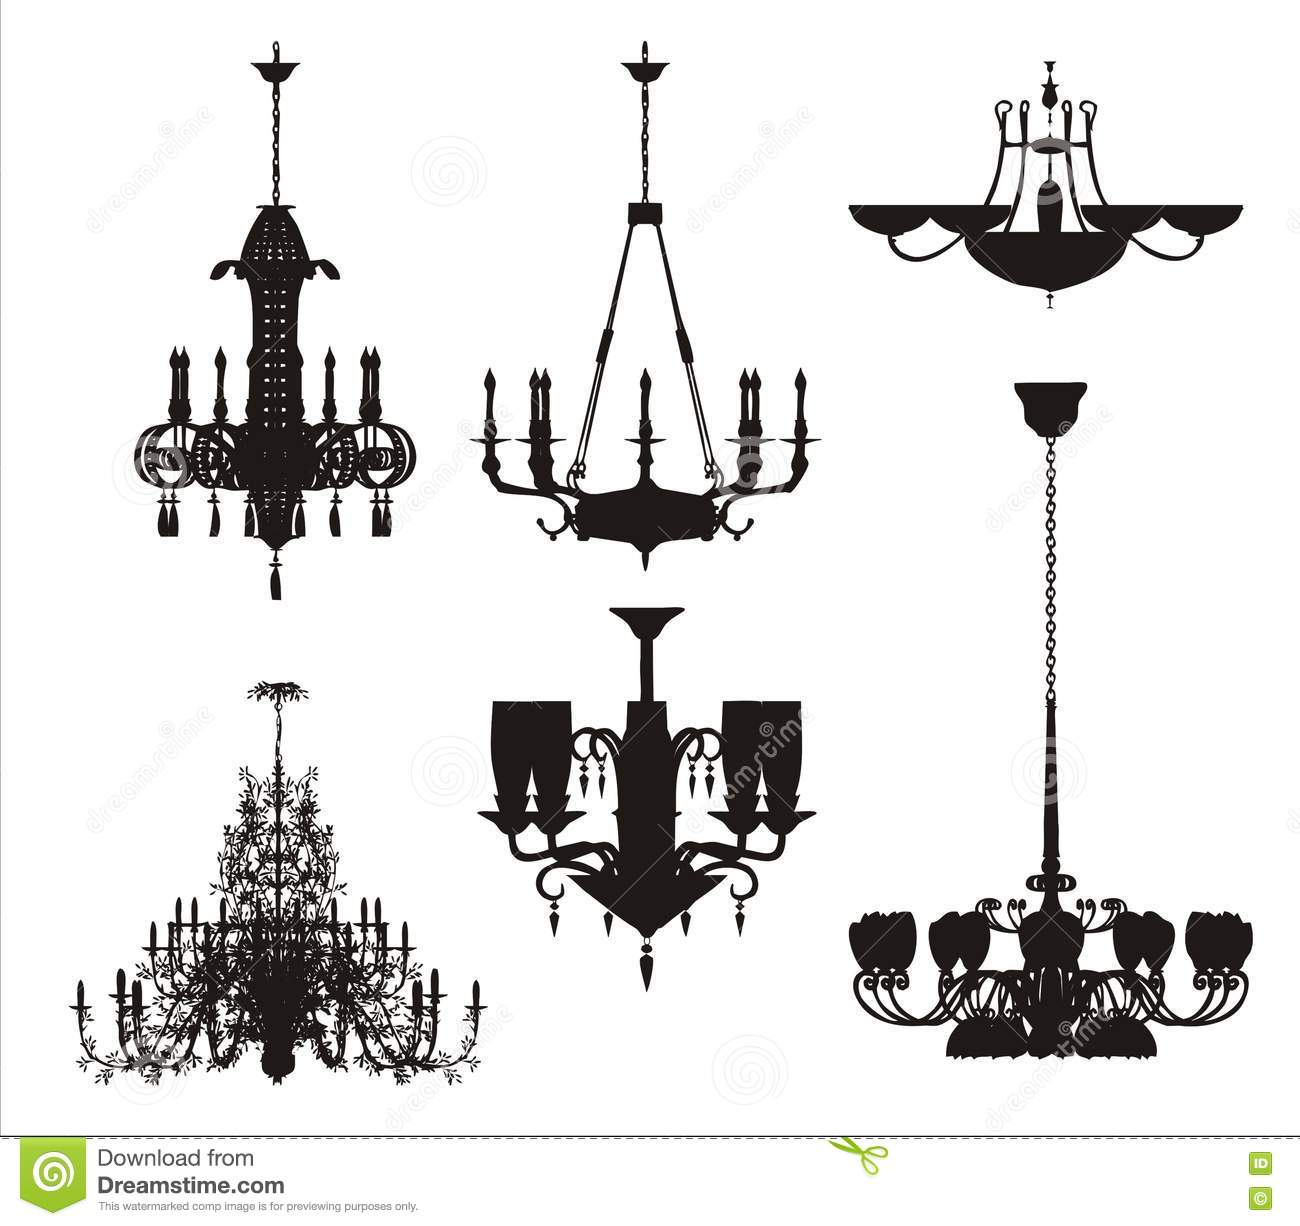 Black Ceiling Lamp Royalty Free Vector Image: Lighting Vector Set Stock Vector. Image Of Black, Cable